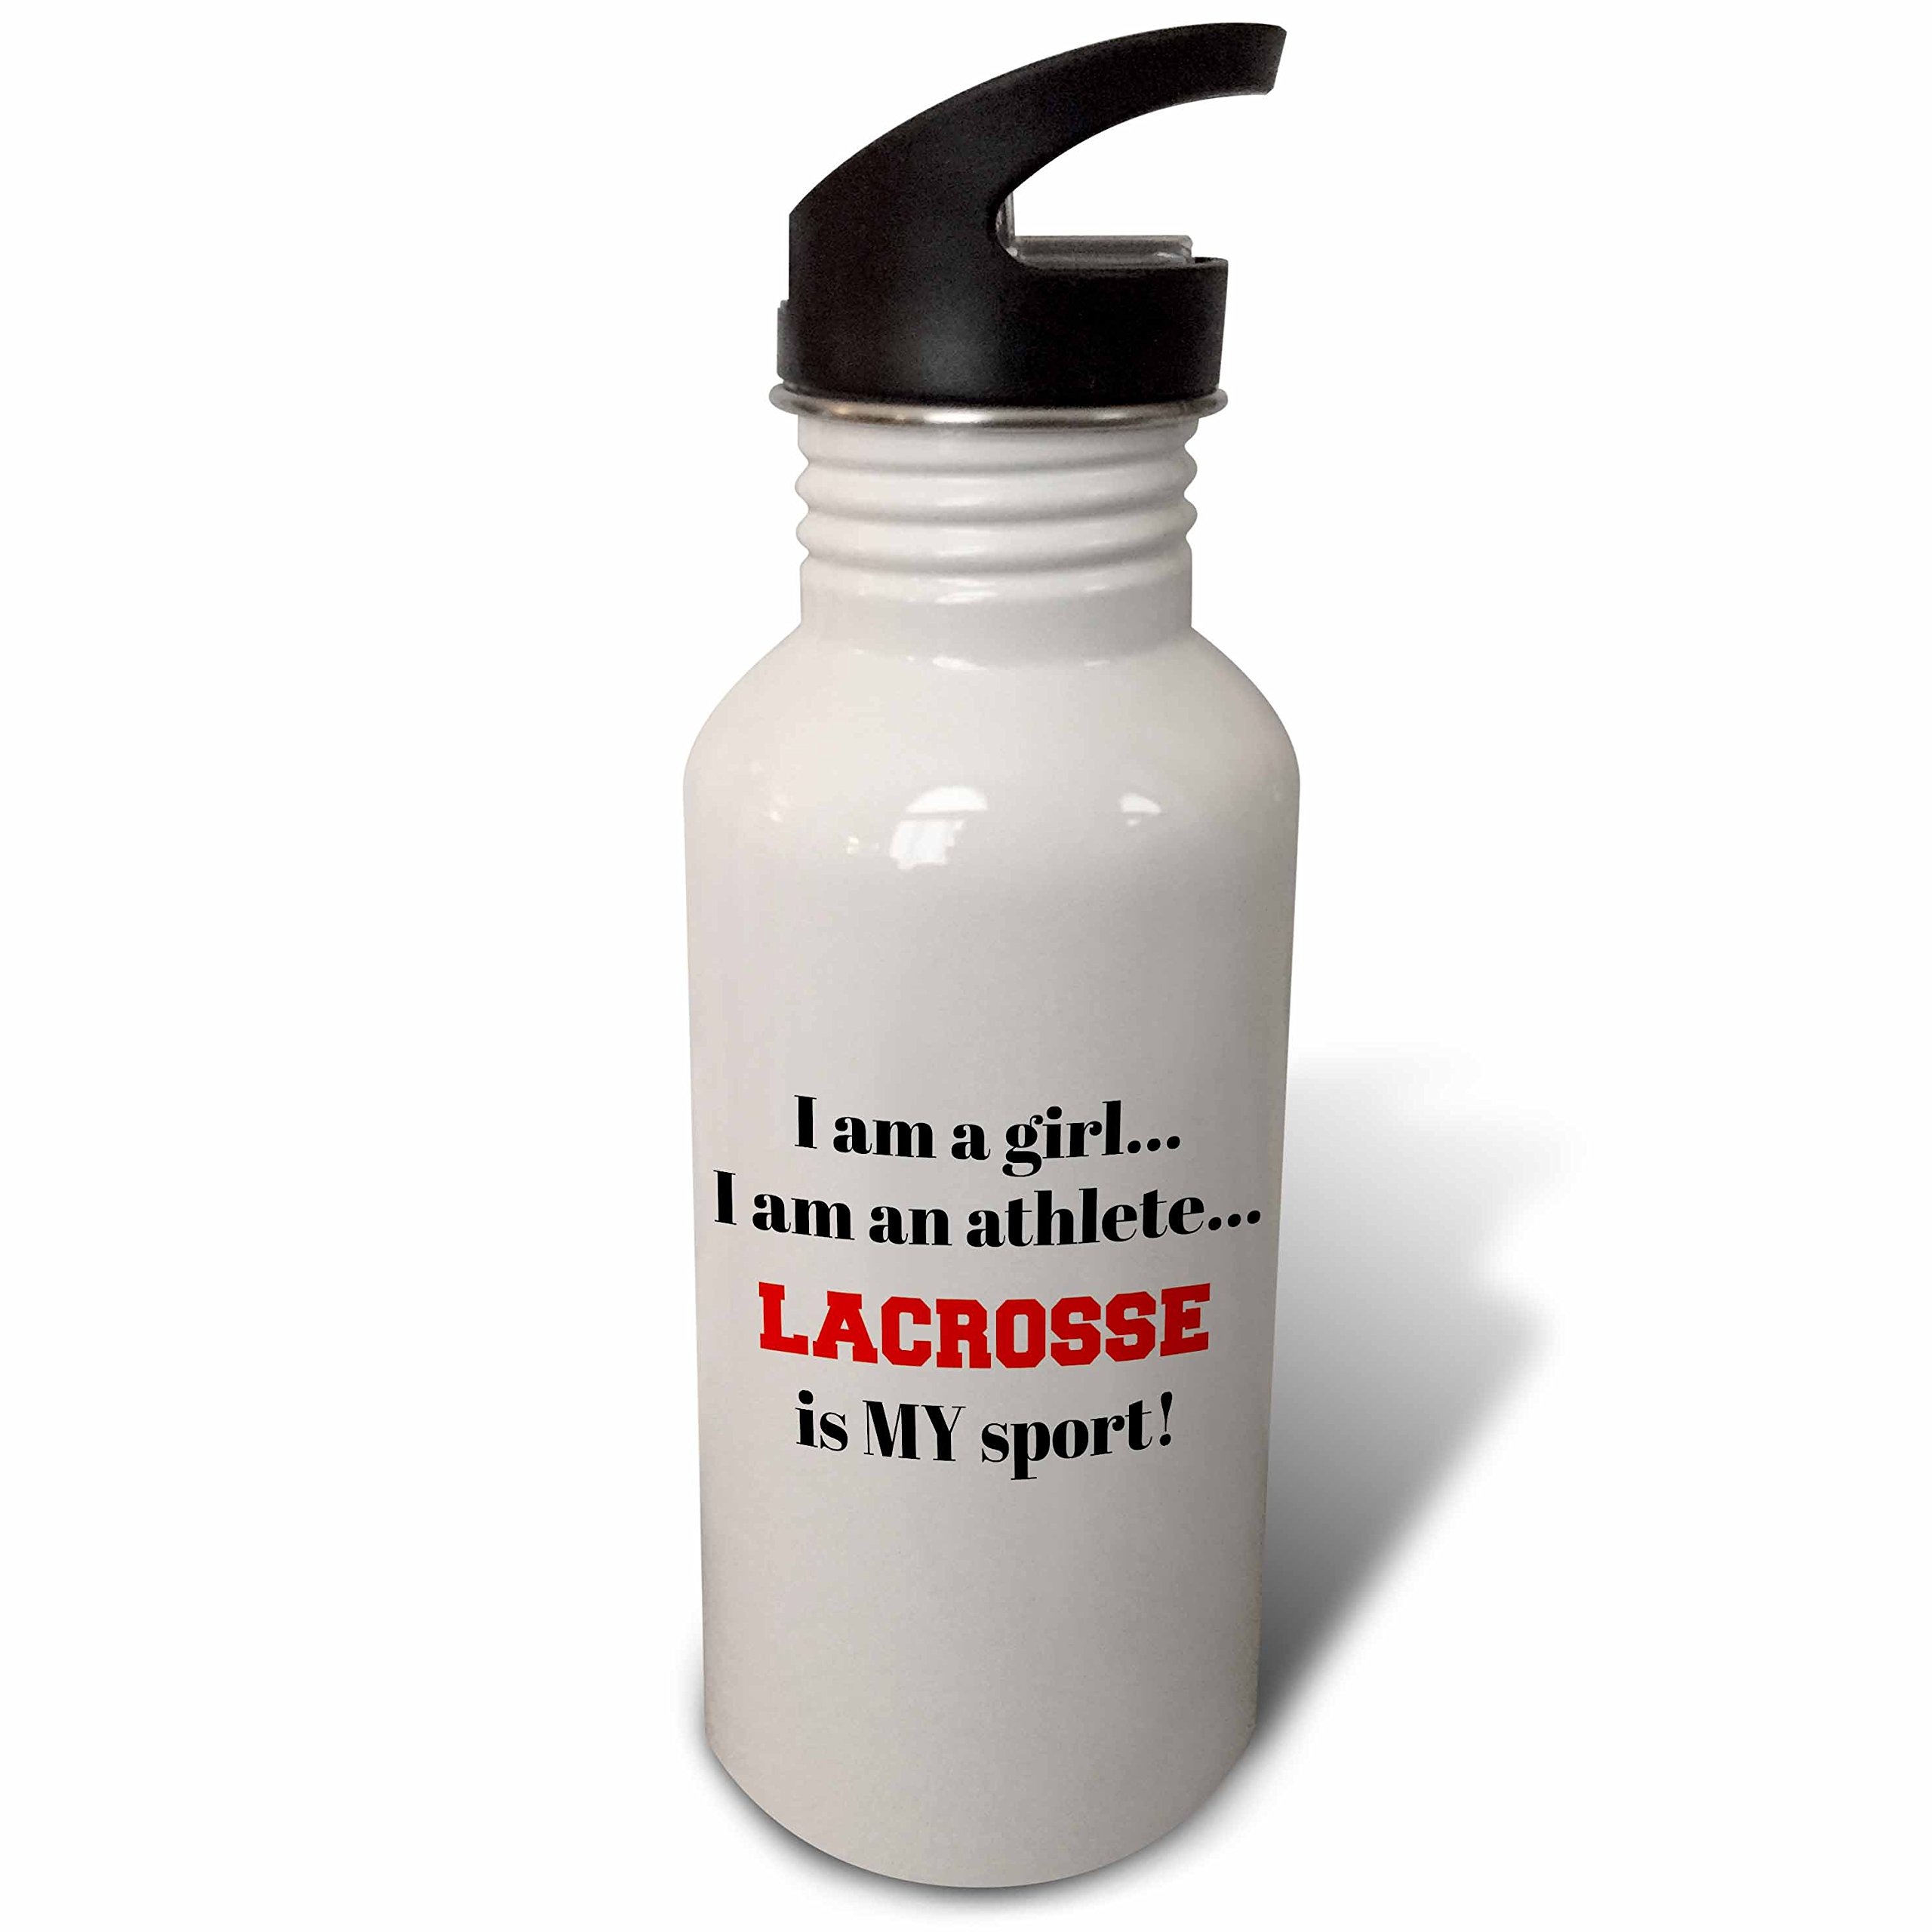 3dRose Xander inspirational quotes - I am a girl, I am an athlete, lacrosse is my sport, black red letters - Flip Straw 21oz Water Bottle (wb_265931_2)